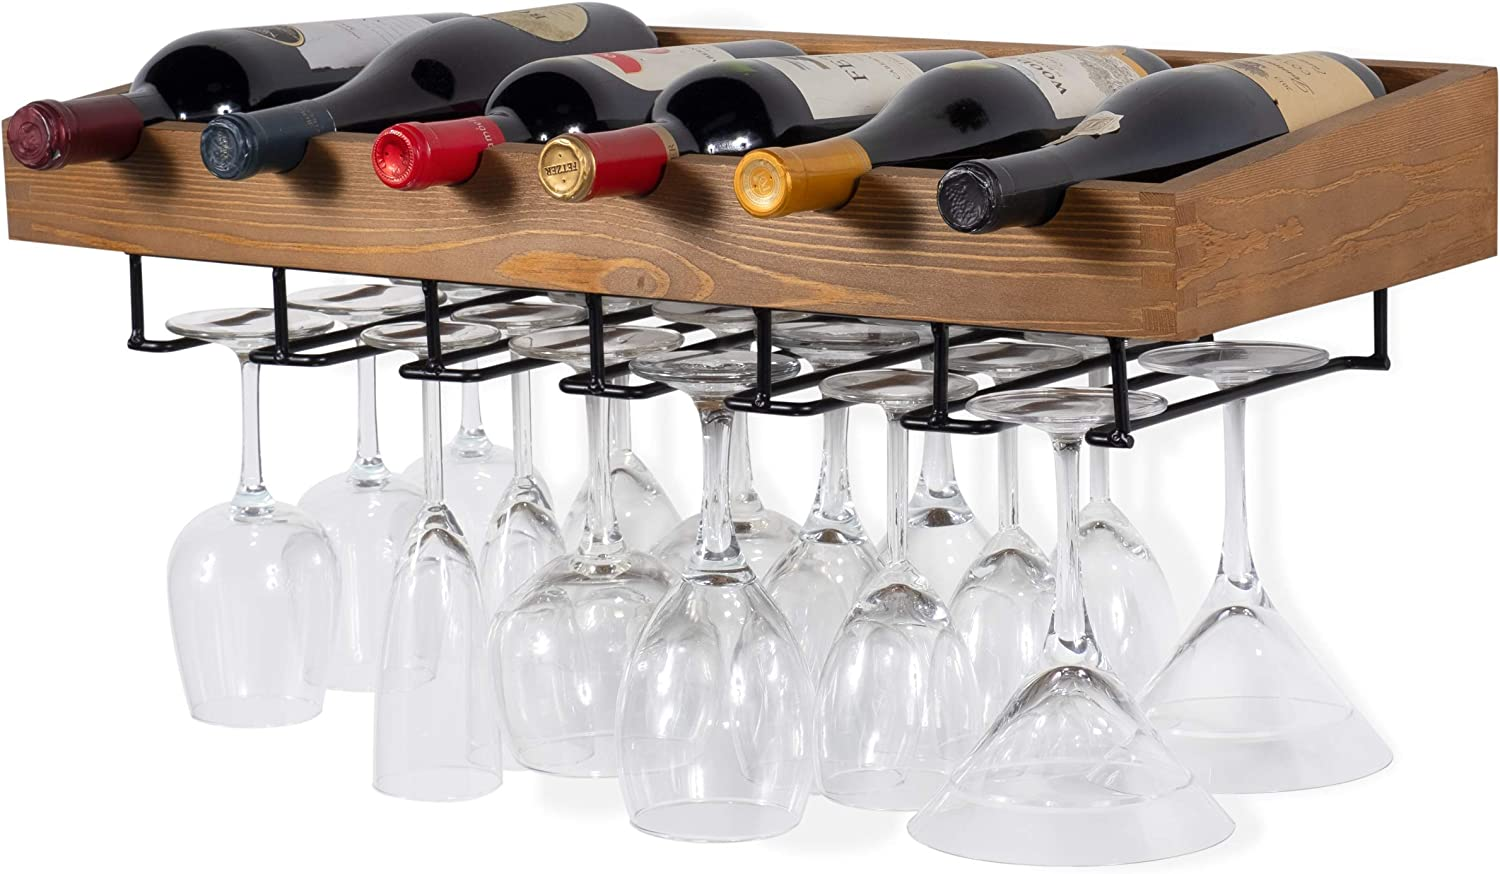 Brightmaison Wine Rack Wall Mounted Hanging Bottle Glass Holder 6 Bottles And Stem Wine Glass Stemware Rack Wood Walnut Home Kitchen